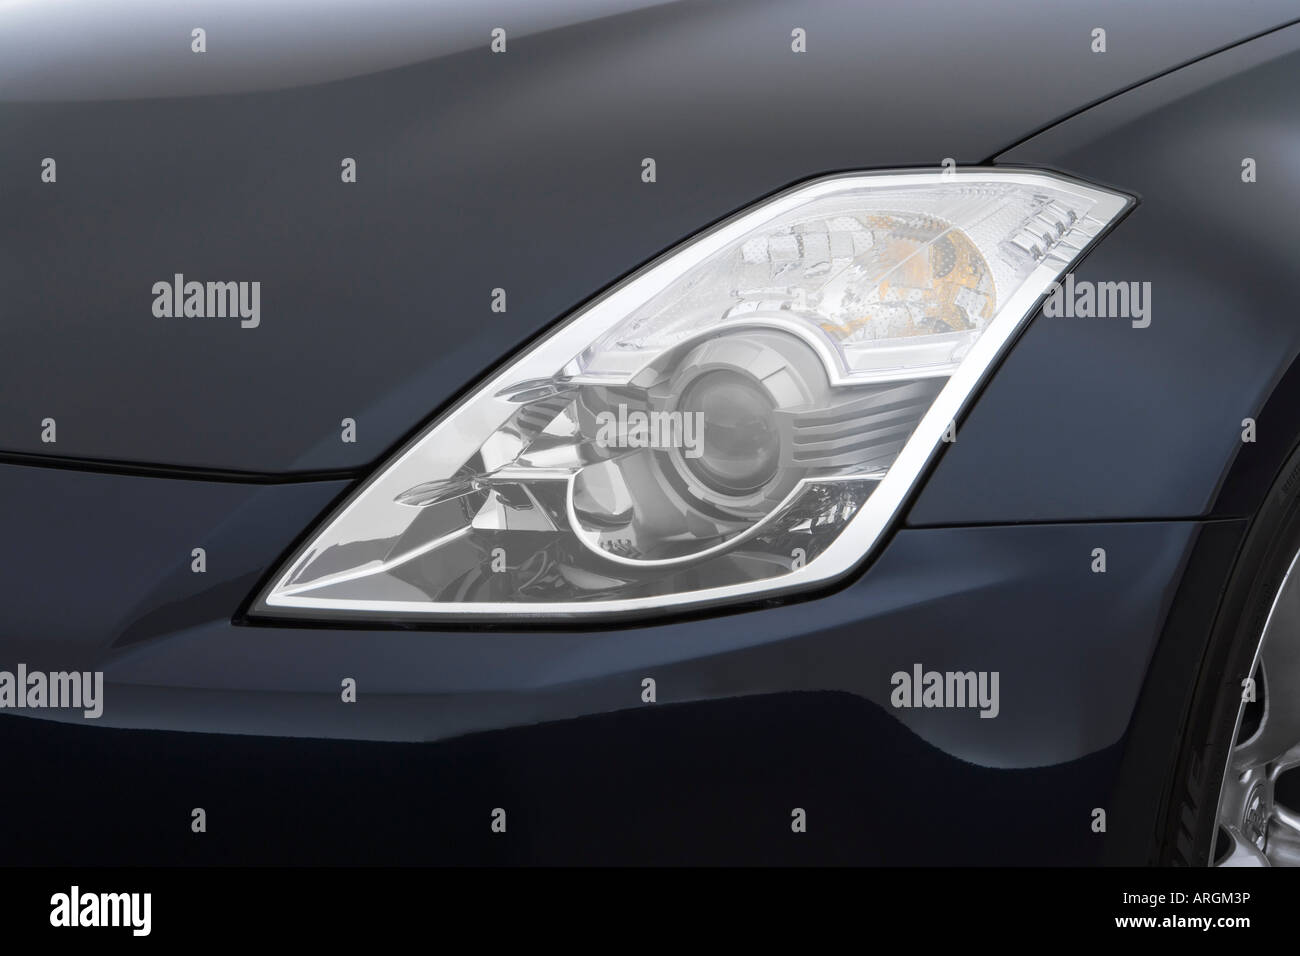 2007 Nissan 350z Roadster Touring In Blue Headlight Stock Photo Alamy